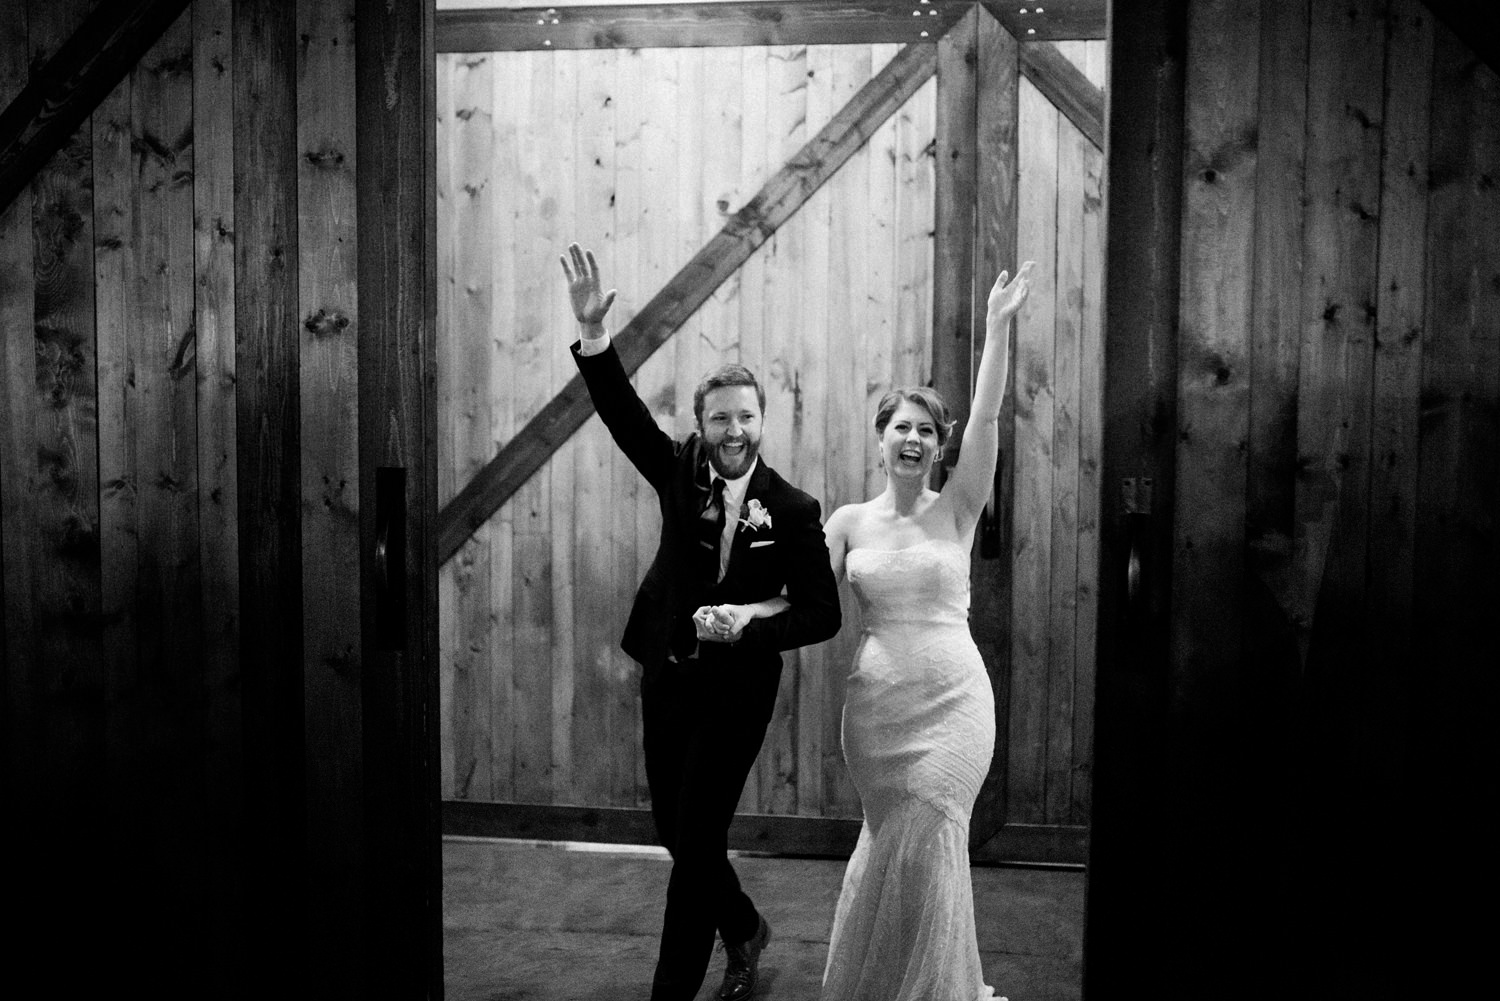 ryan-flynn-best-wedding-photography-2015-seattle-film-photographer-0175.JPG